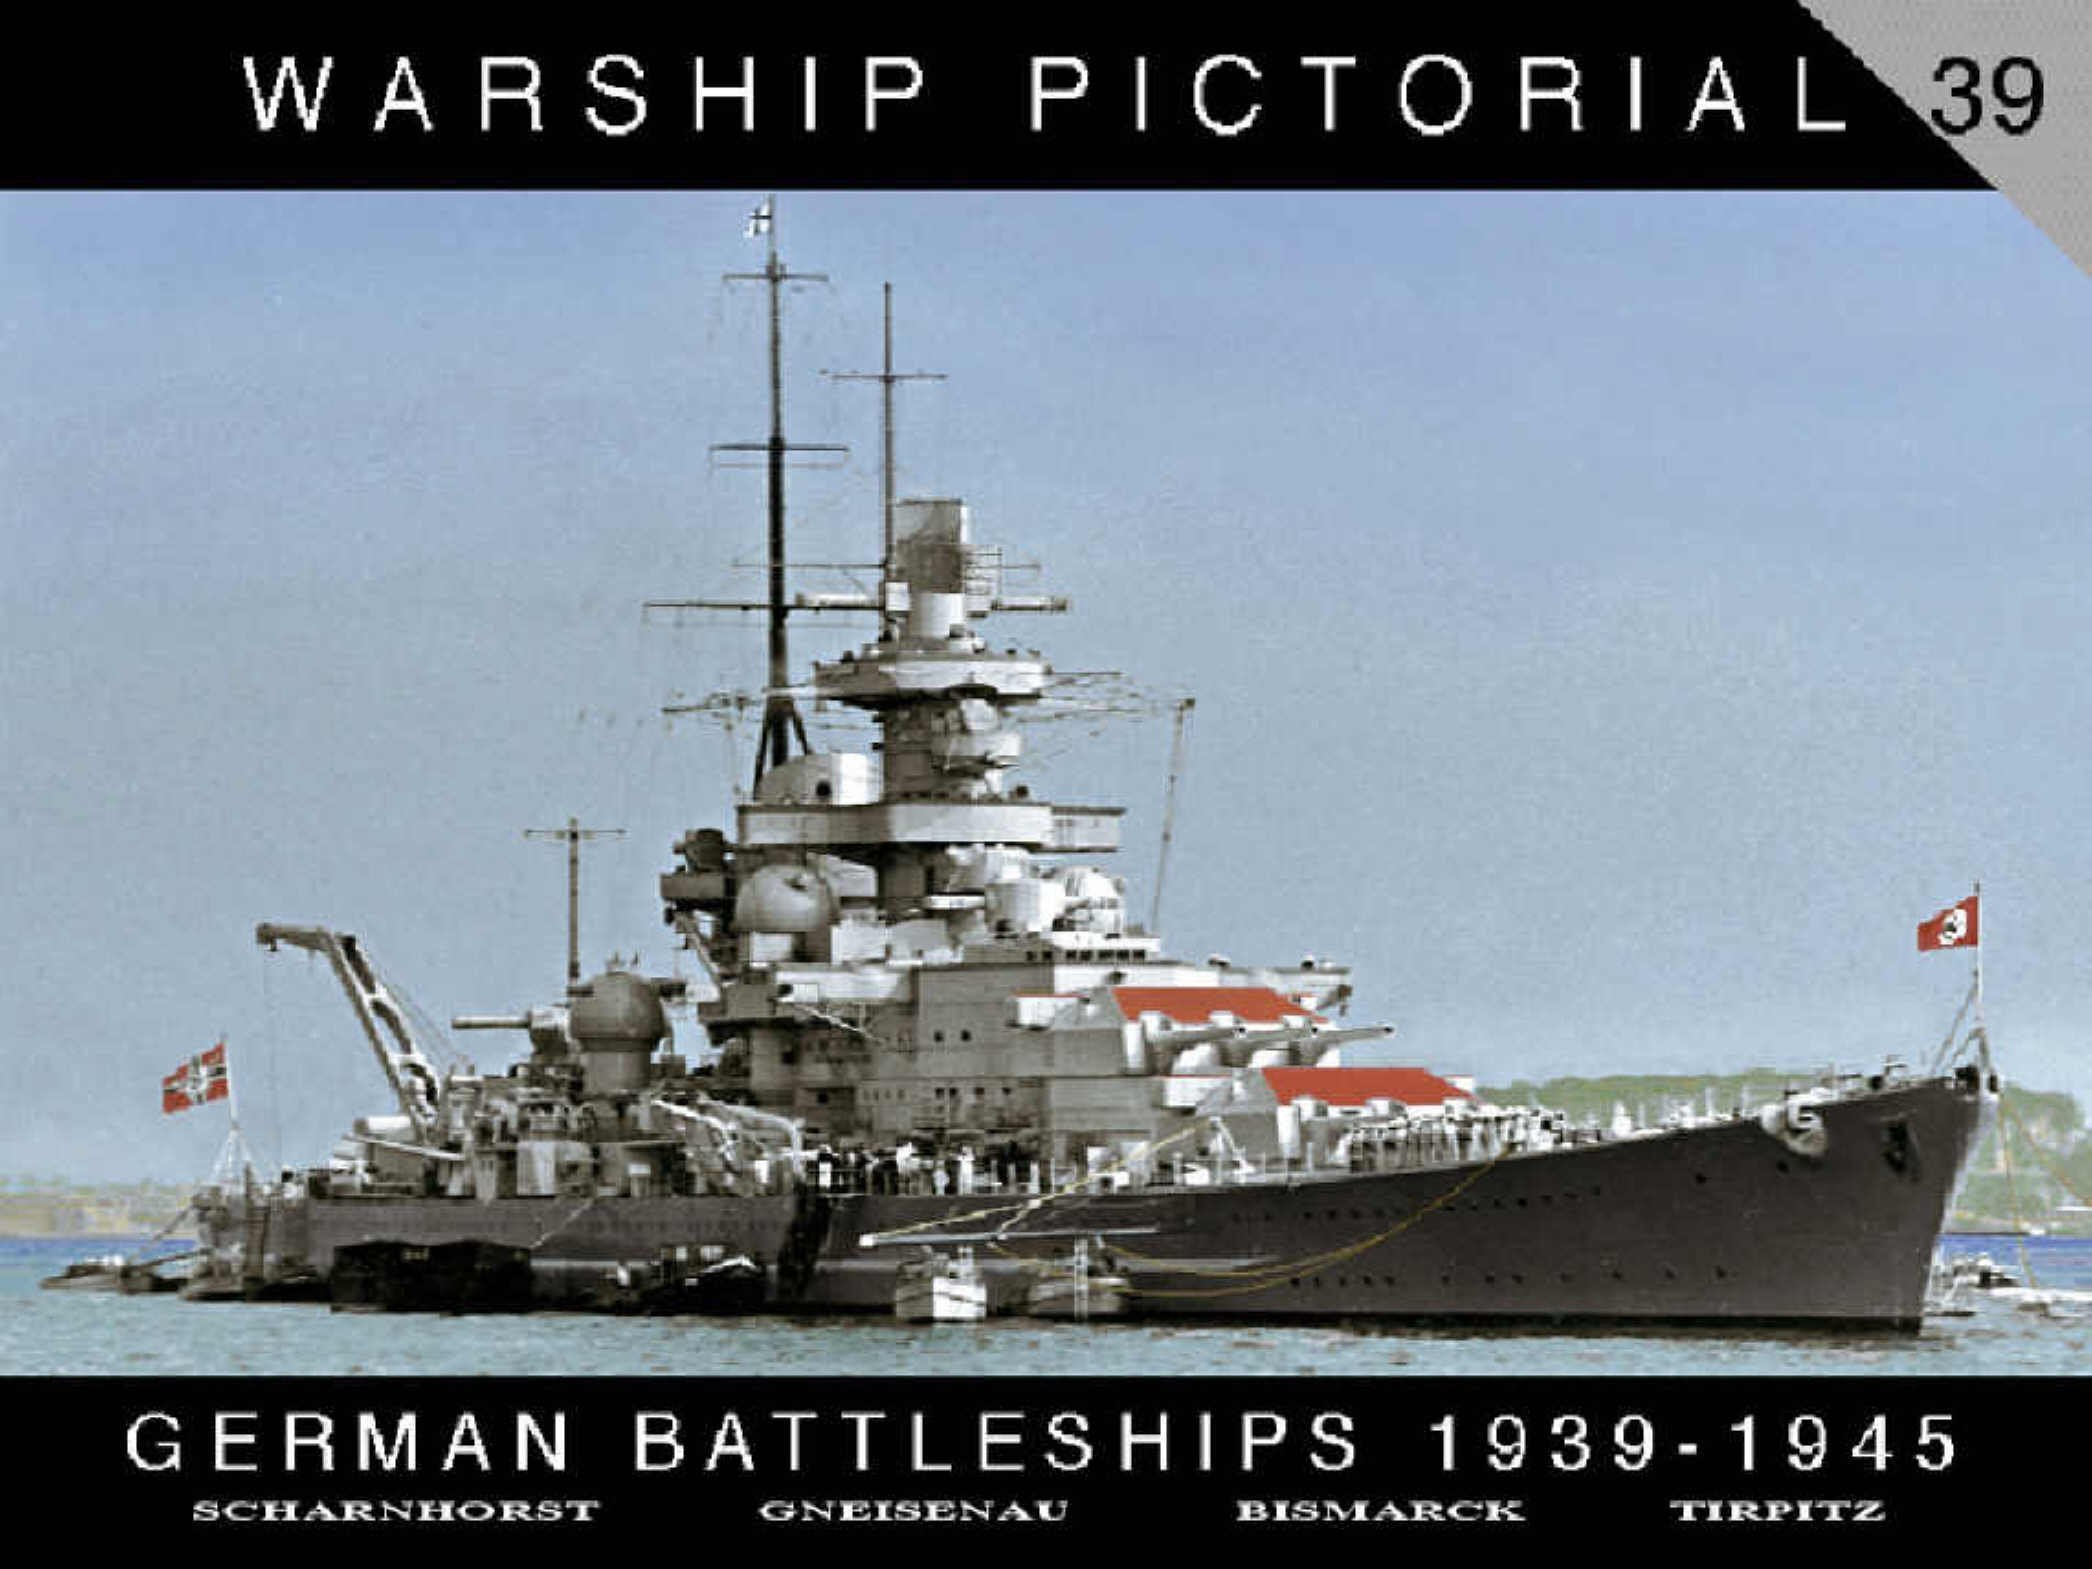 Warship Pictorial No. 39 - German Battleships, 1939-1945